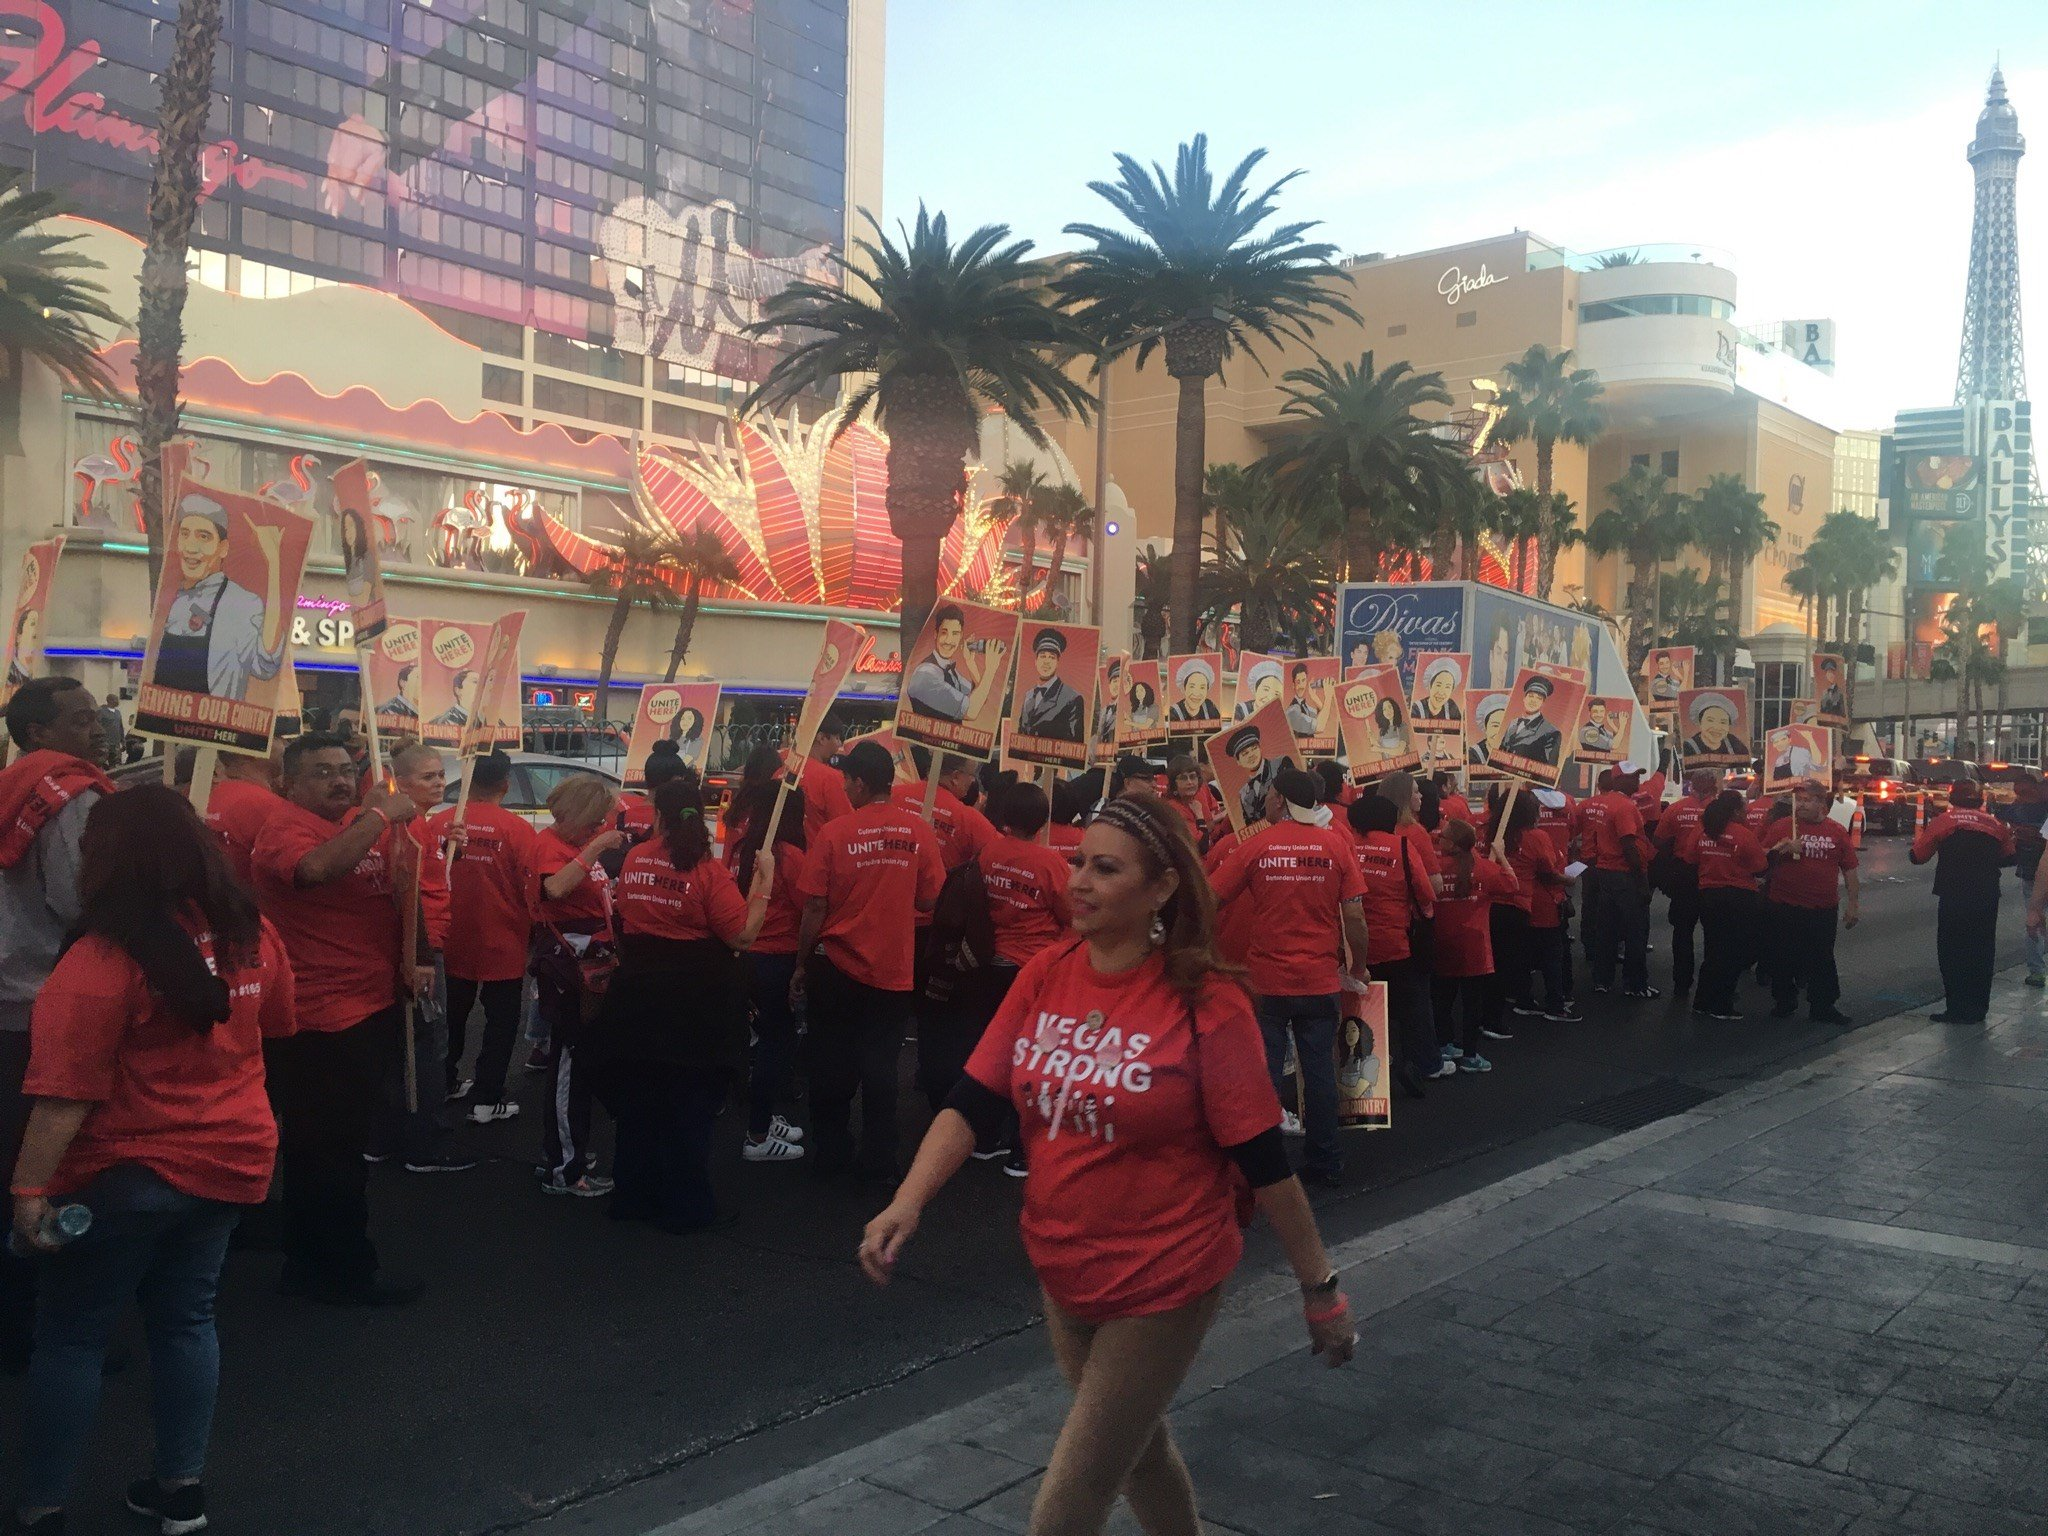 Thousands of people, including many of those who work on the Las Vegas Strip all came together Thursday night for a Vegas Strong march.